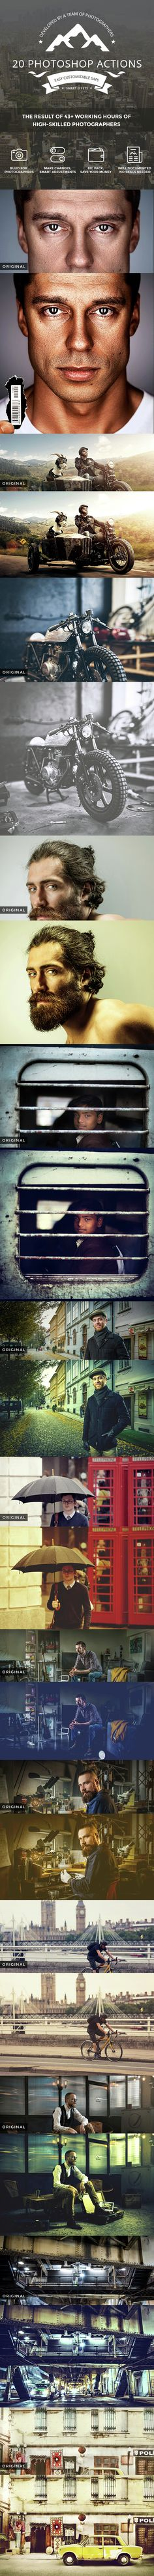 20 Photo Effect Photoshop Actions